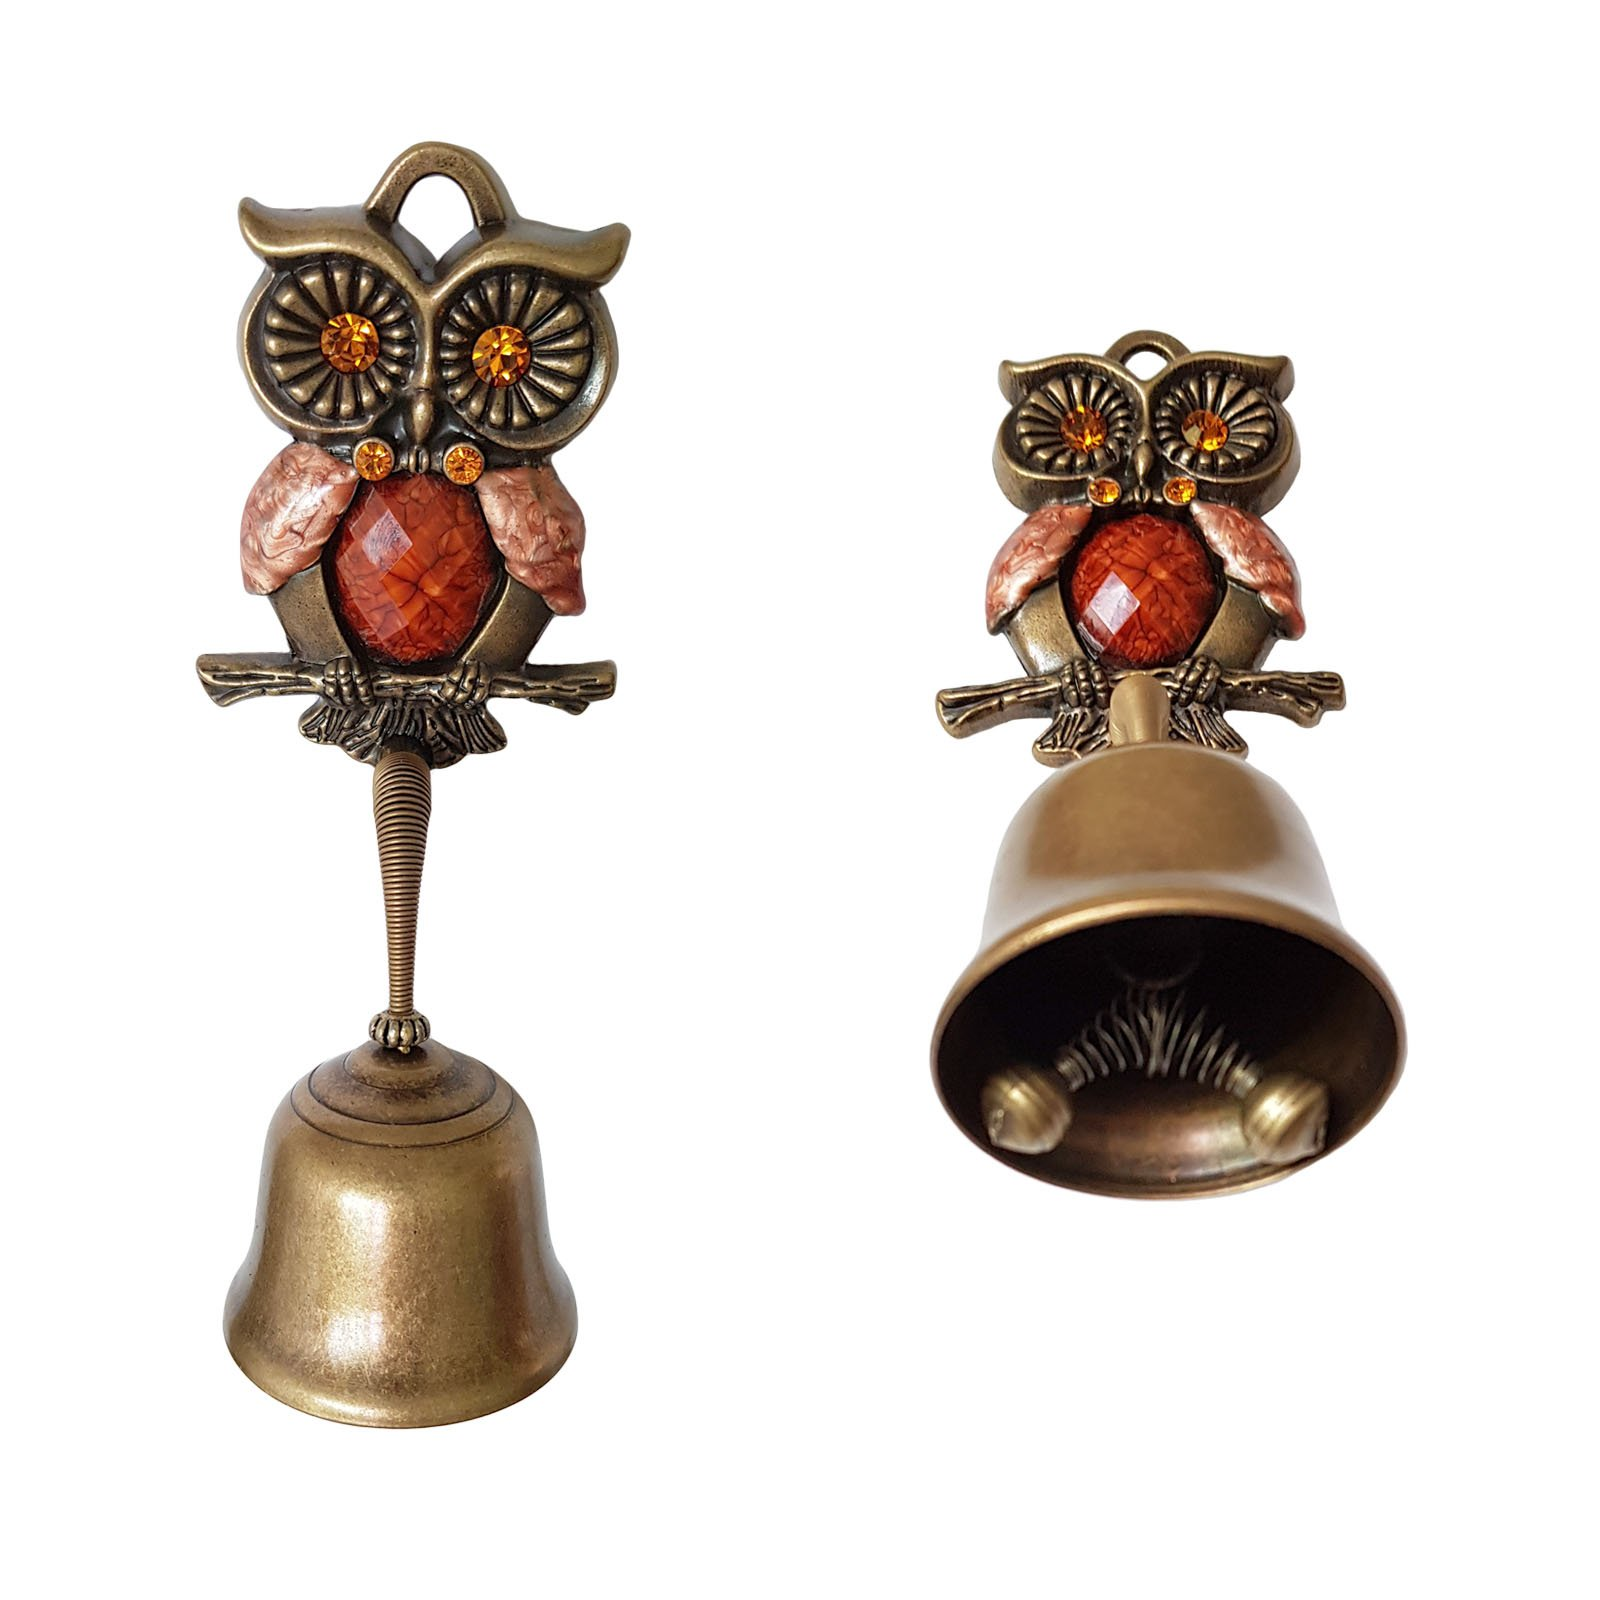 Owl Springy Shopkeepers Bell Entrance Alert Chime Compact & Lightweight Unique Design Home Decoration Doorbell A-Type (Orange) by YG-1 (Image #3)